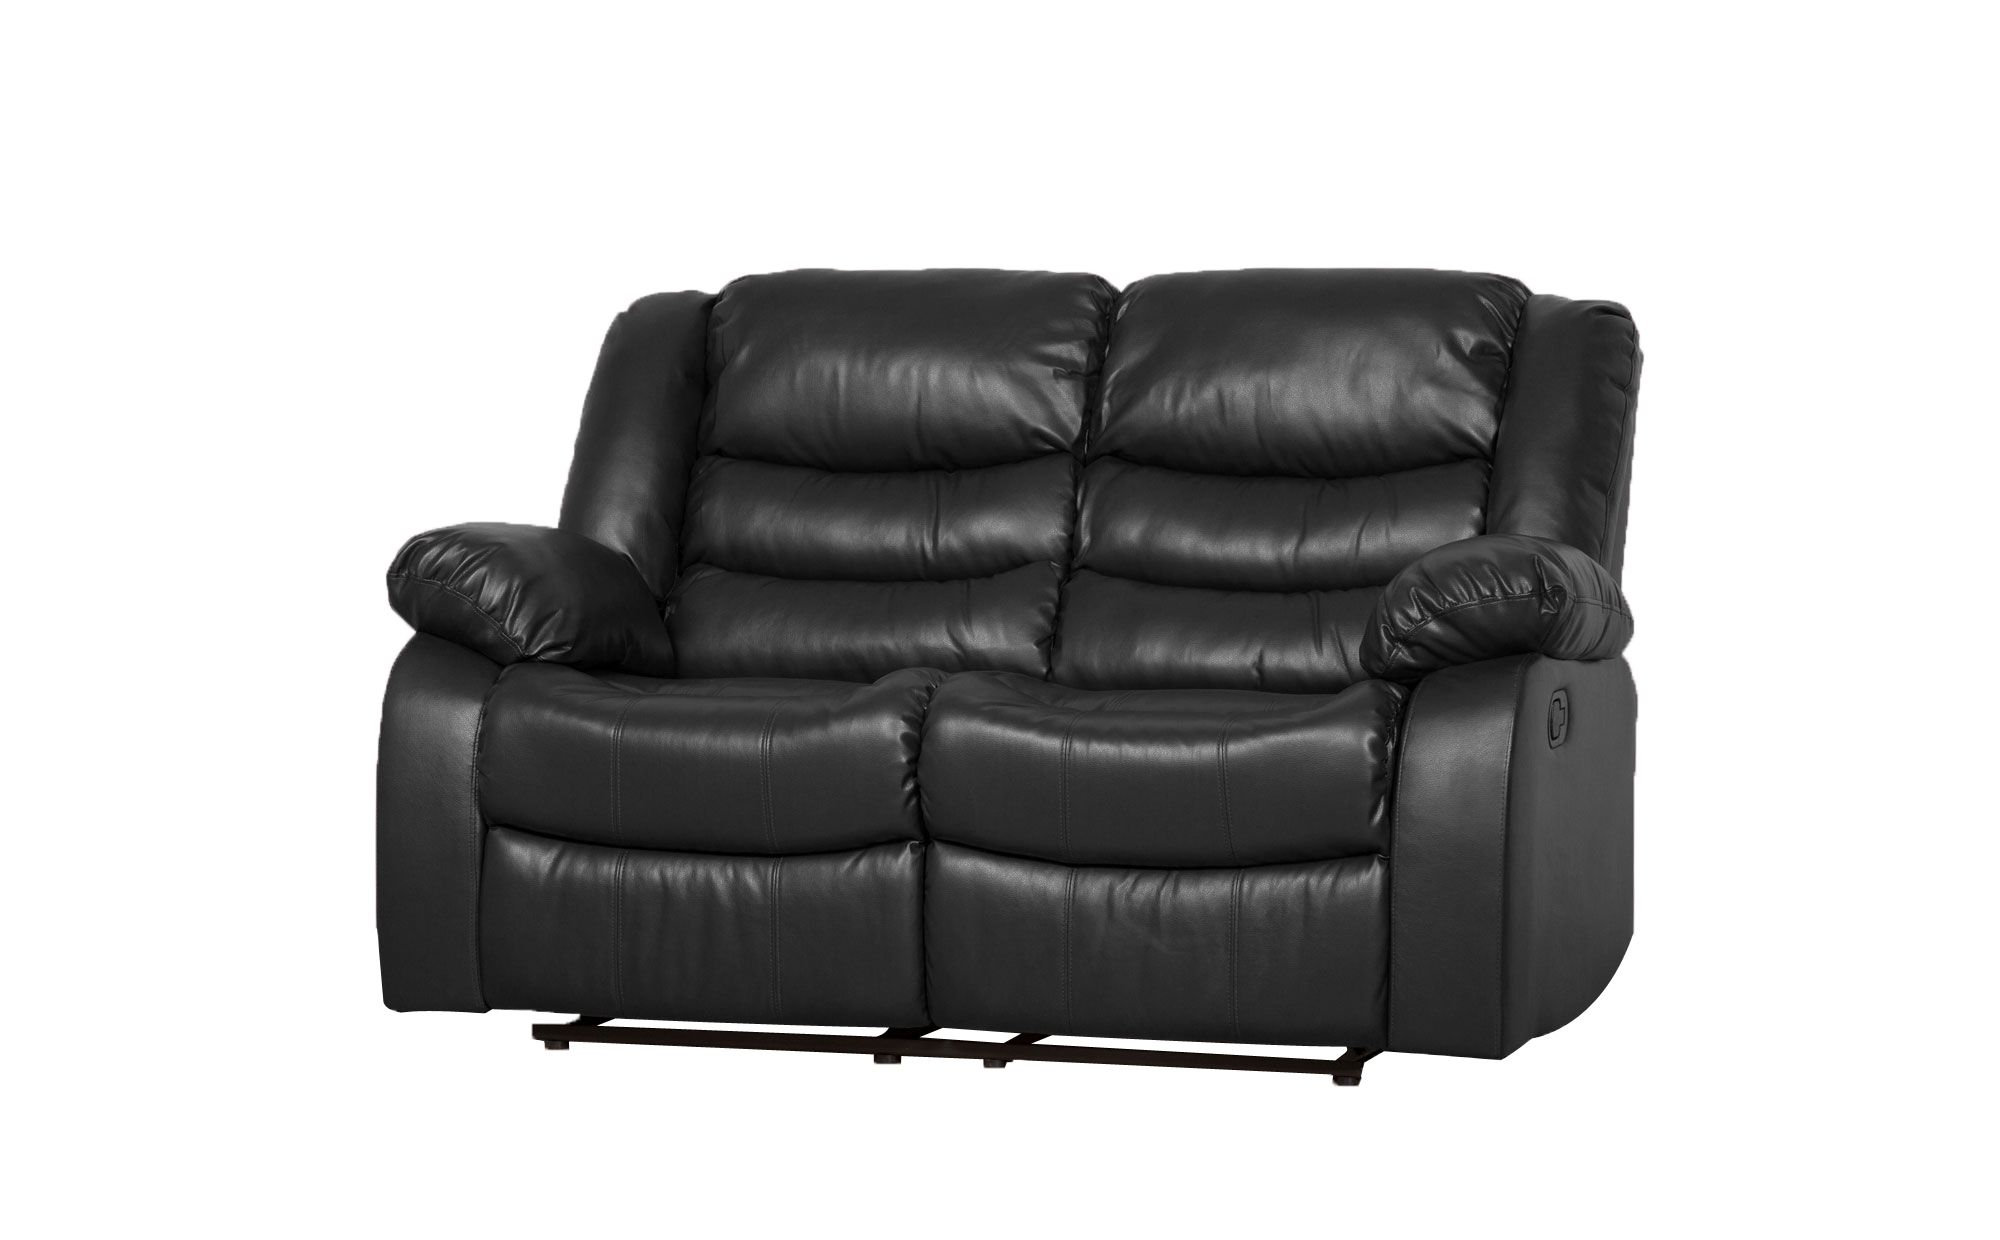 Ideas About Leather Recliner Sofa Sale Uk